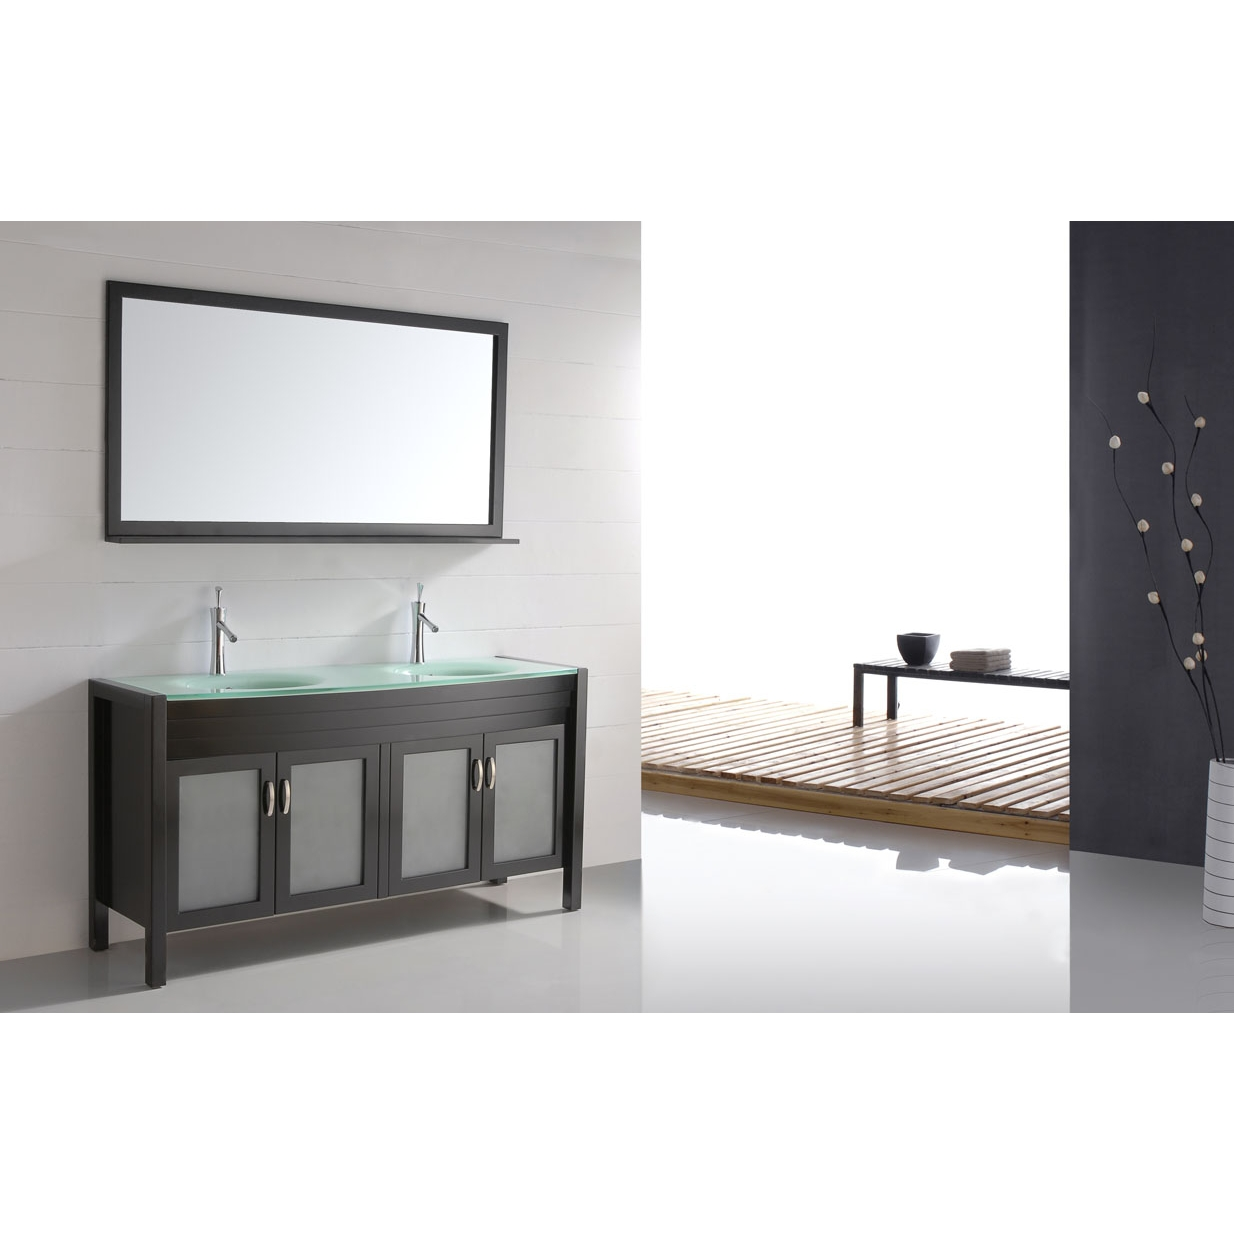 60 solid wood double sink vanity tempered glass top espresso cb6011